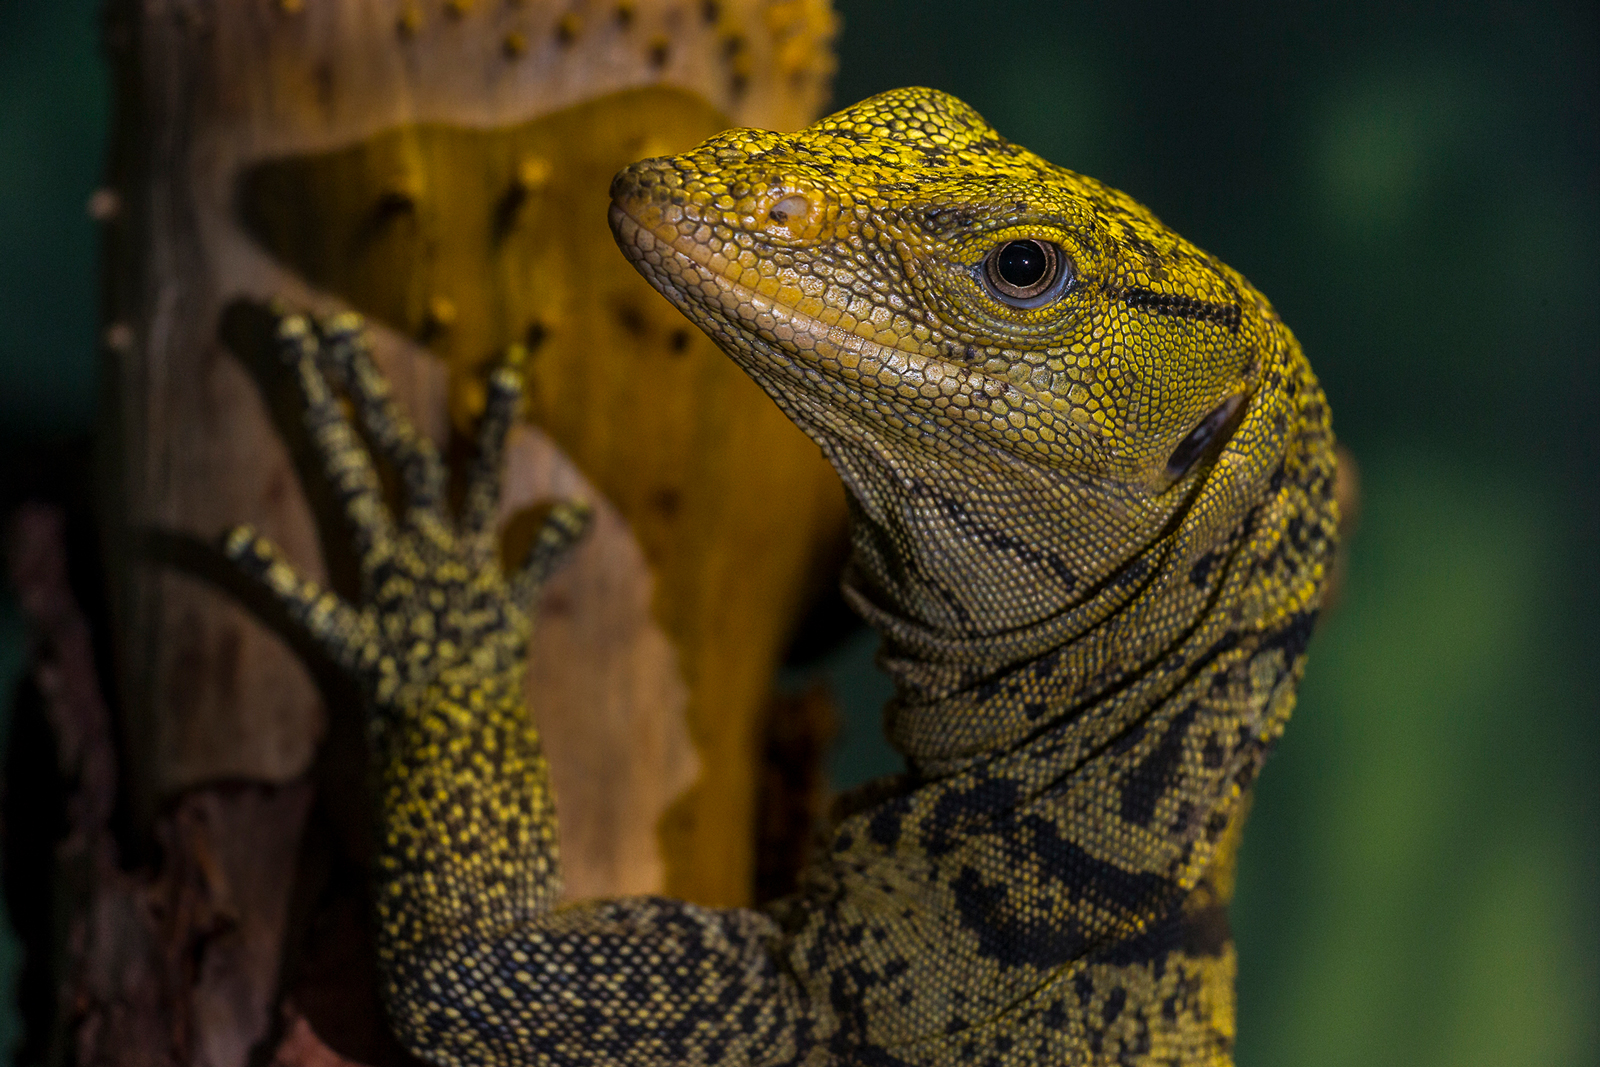 Rare Monitor Lizard Now on Exhibit at the San Diego Zoo